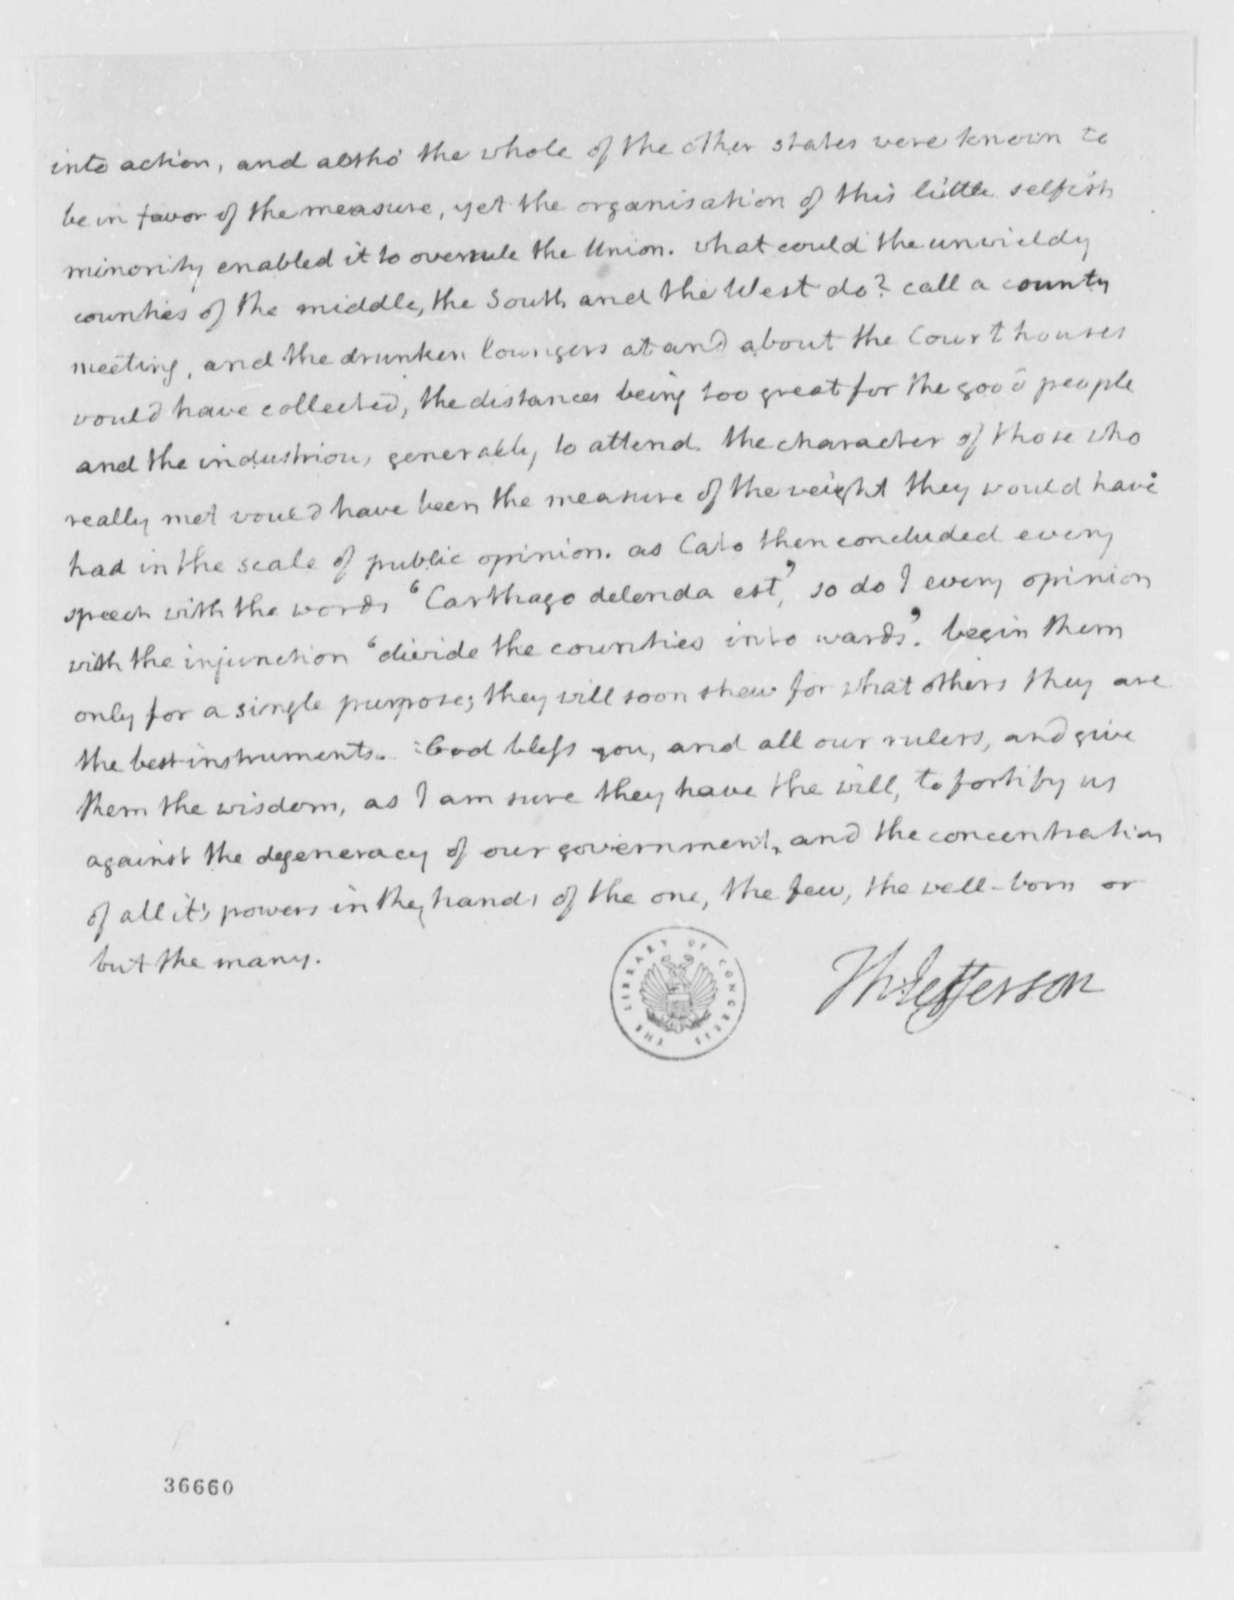 Thomas Jefferson to Joseph C. Cabell, February 2, 1816